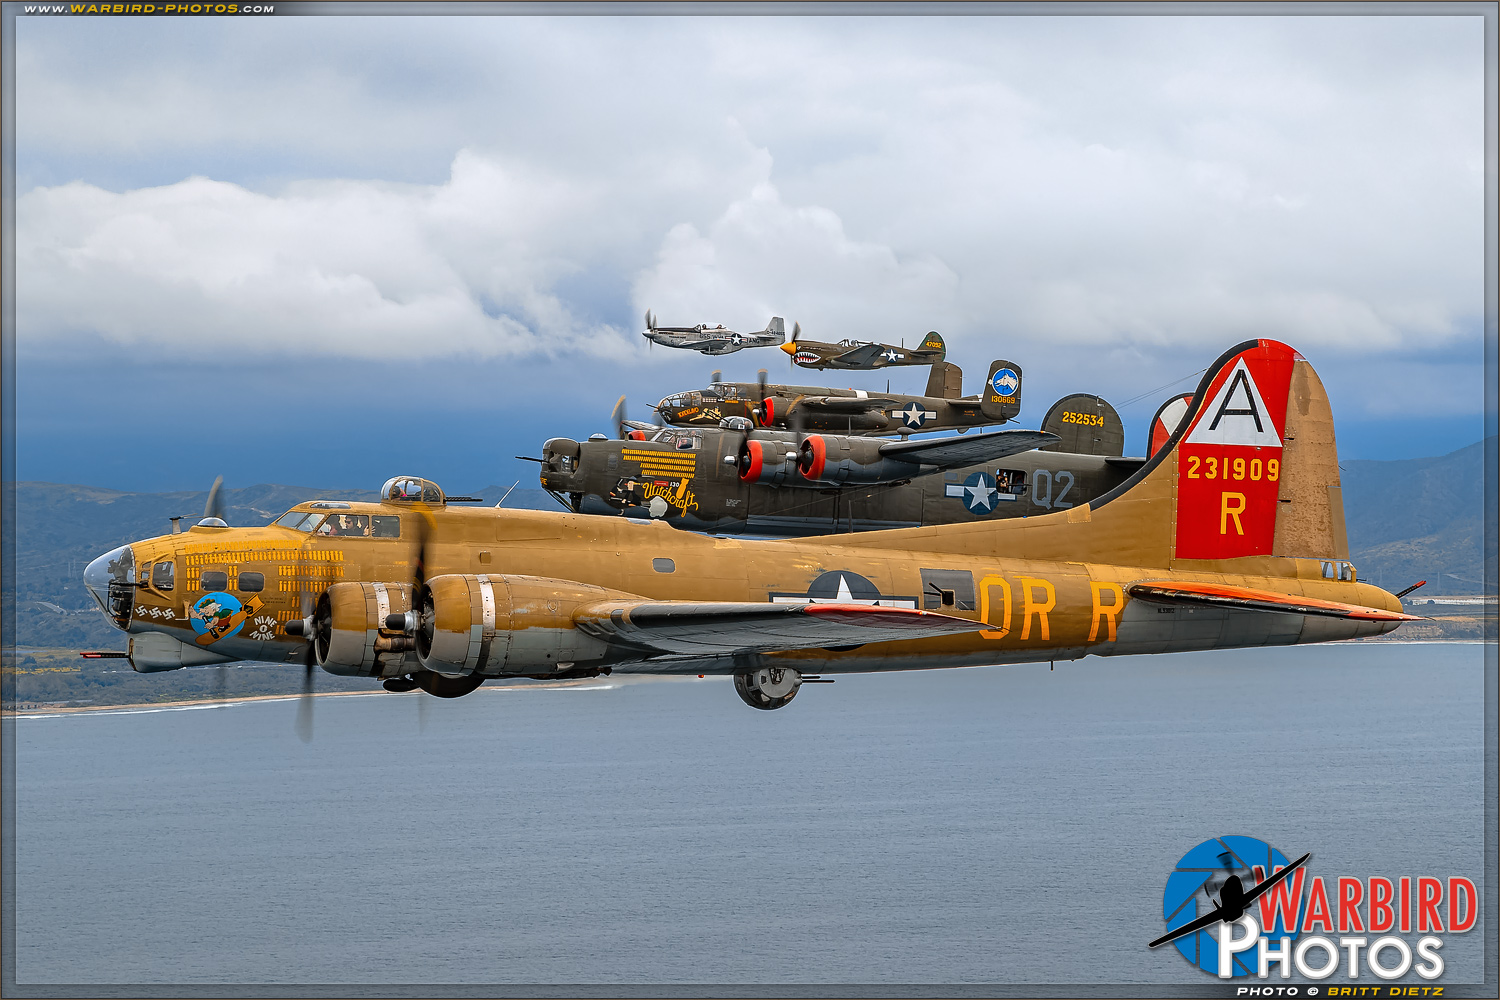 Warbird Gaggle    - Air to Air Photo Shoot - Collings Foundation Fleet - May 8, 2019